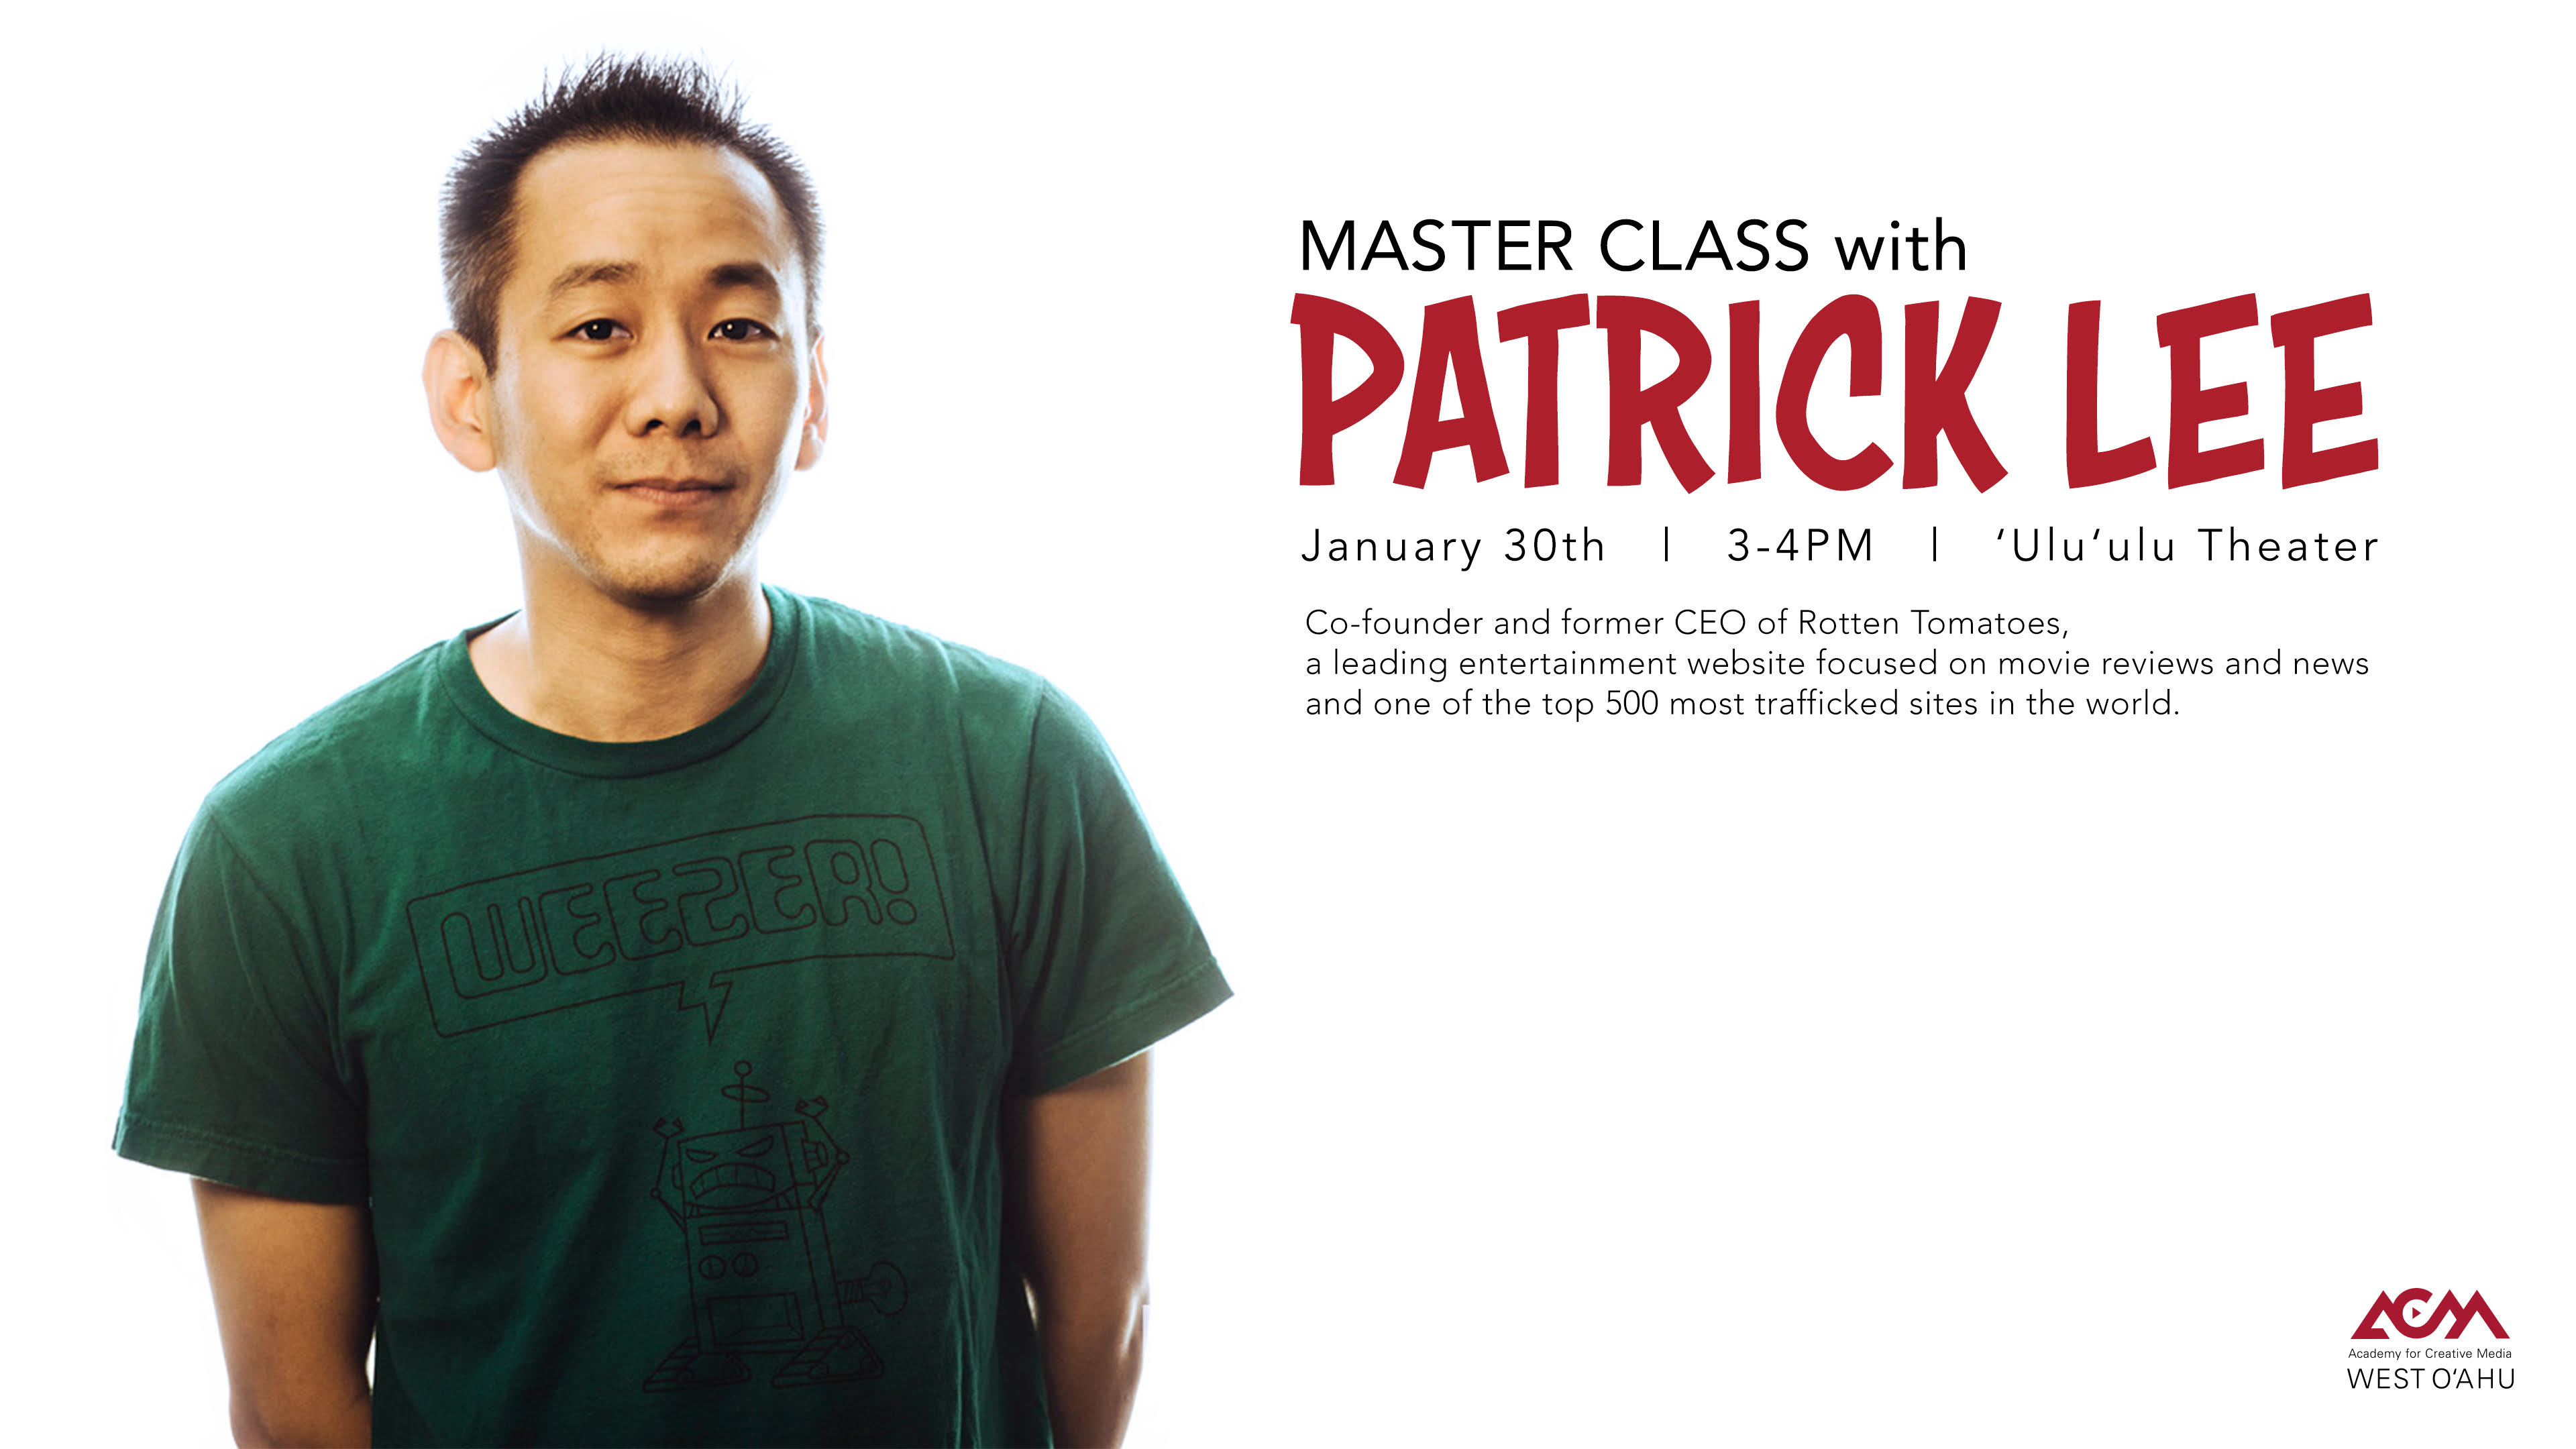 Flier for event with picture of Patrick Lee and the same information about the event as is contained in the article